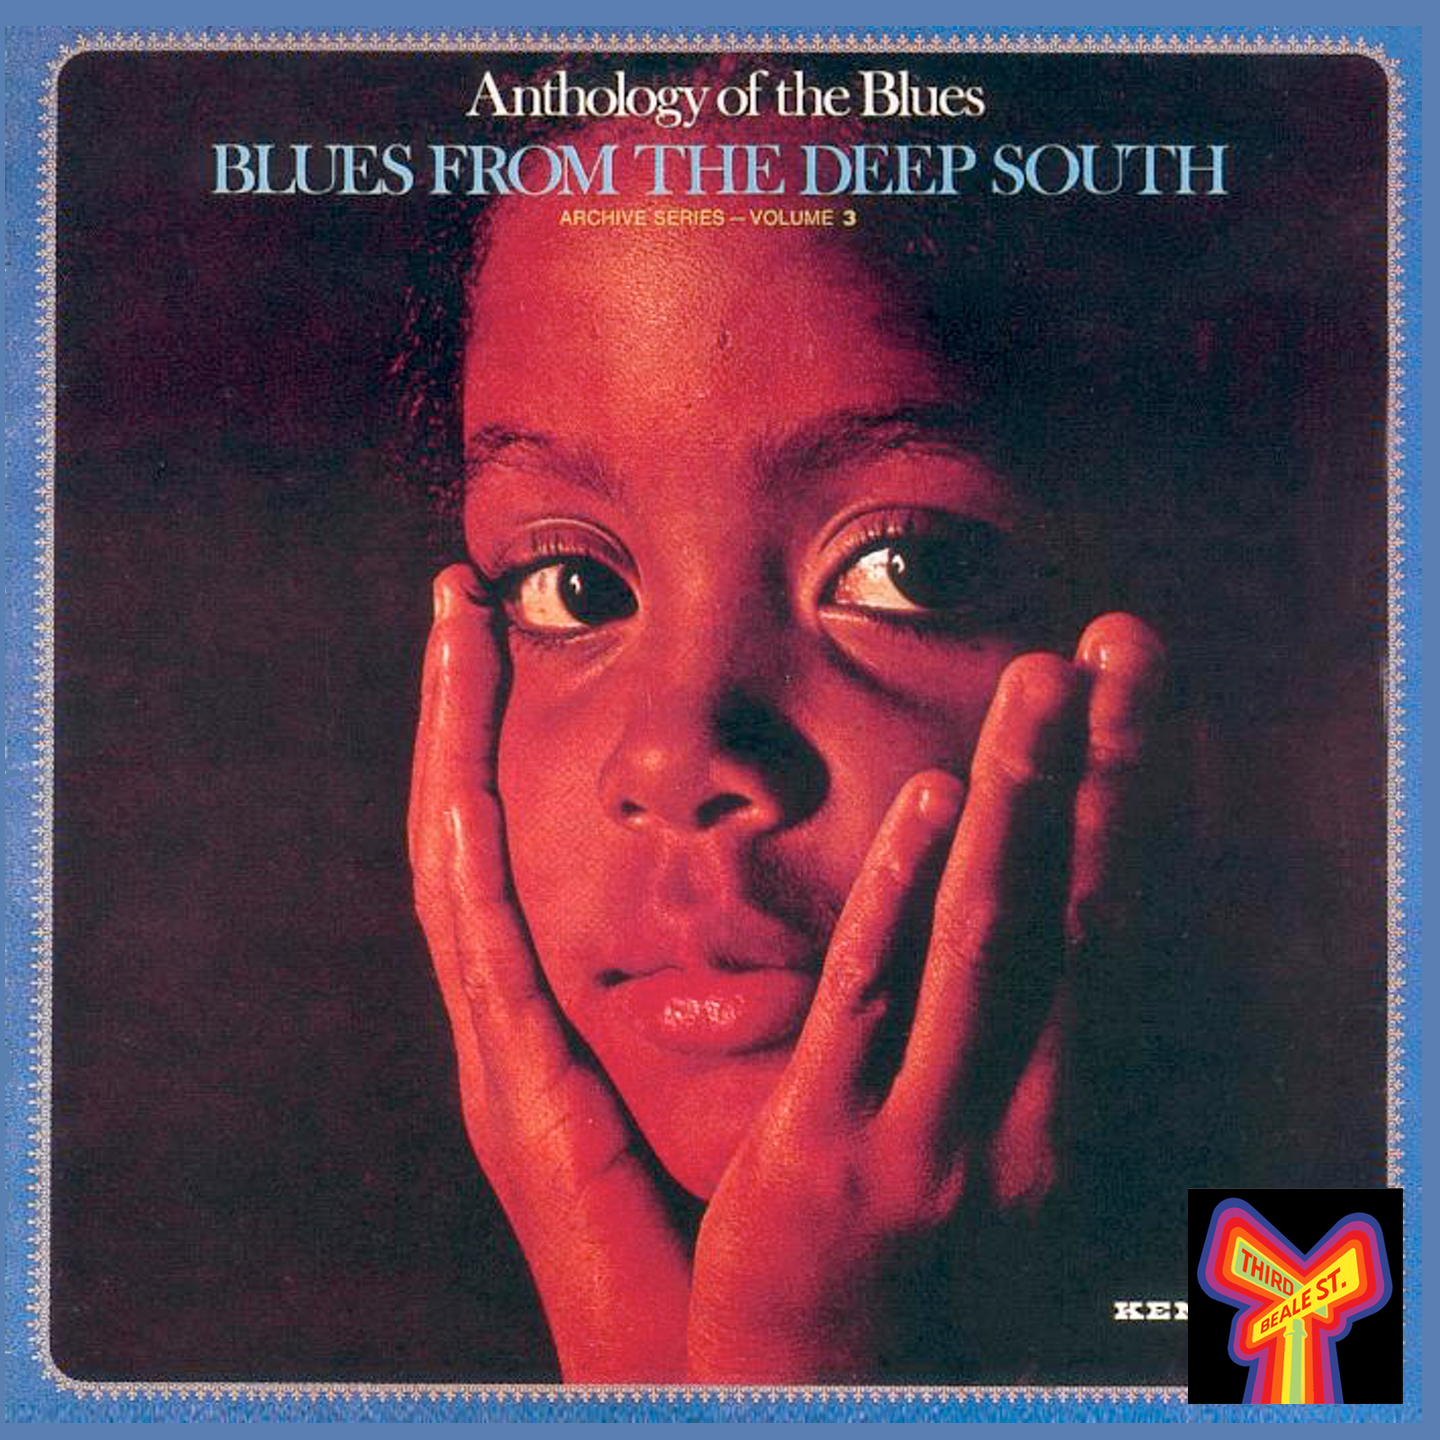 """Caption: One of the distinctive album covers from the """"Anthology of the Blues"""" series"""